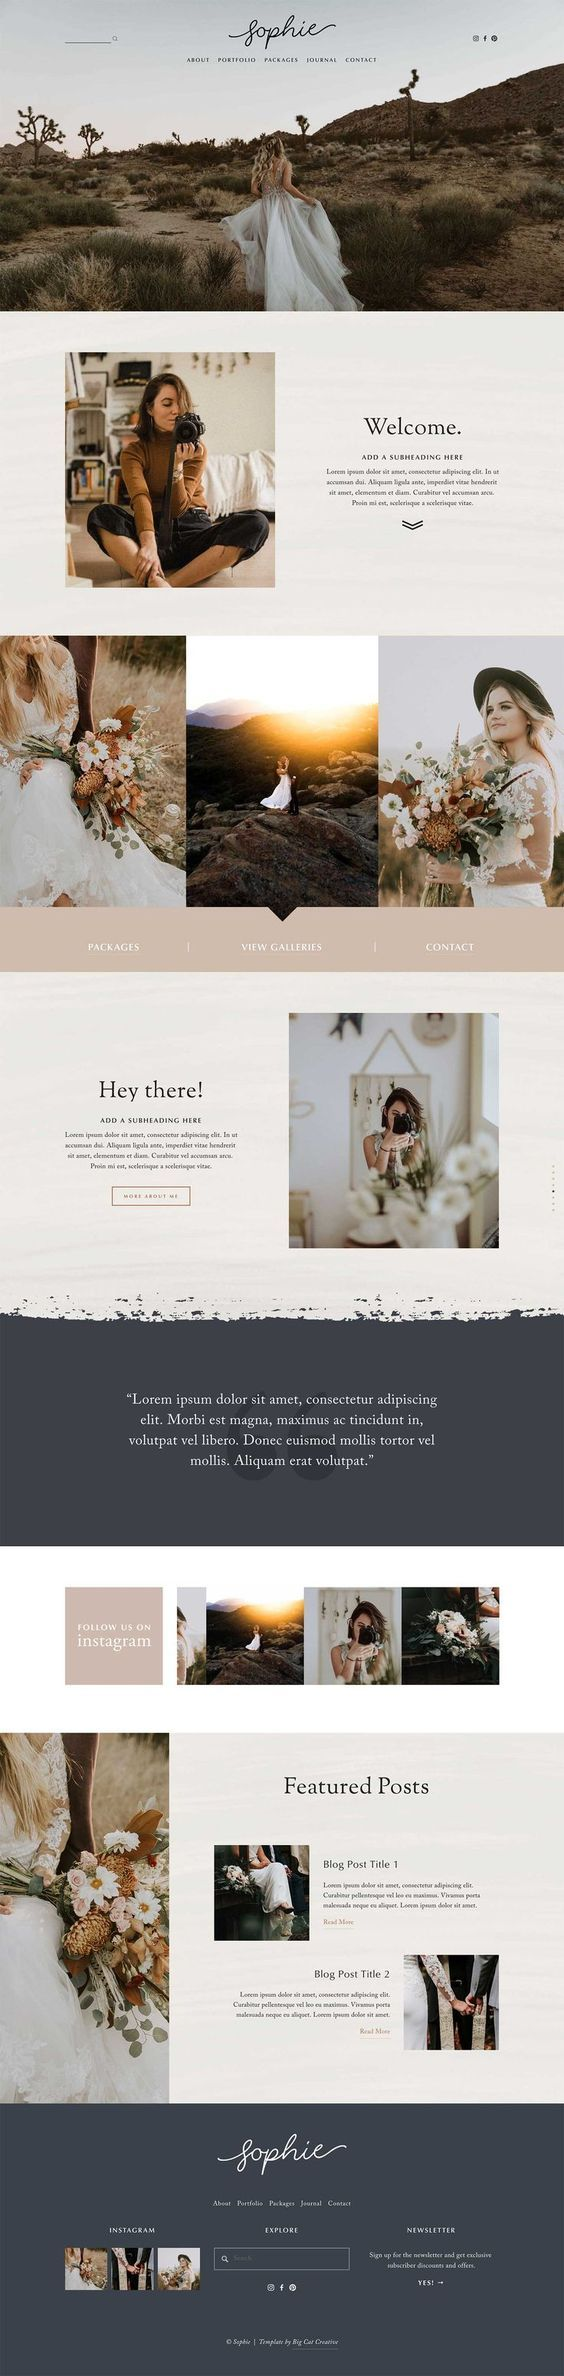 Wedding photographer website. #collageboard